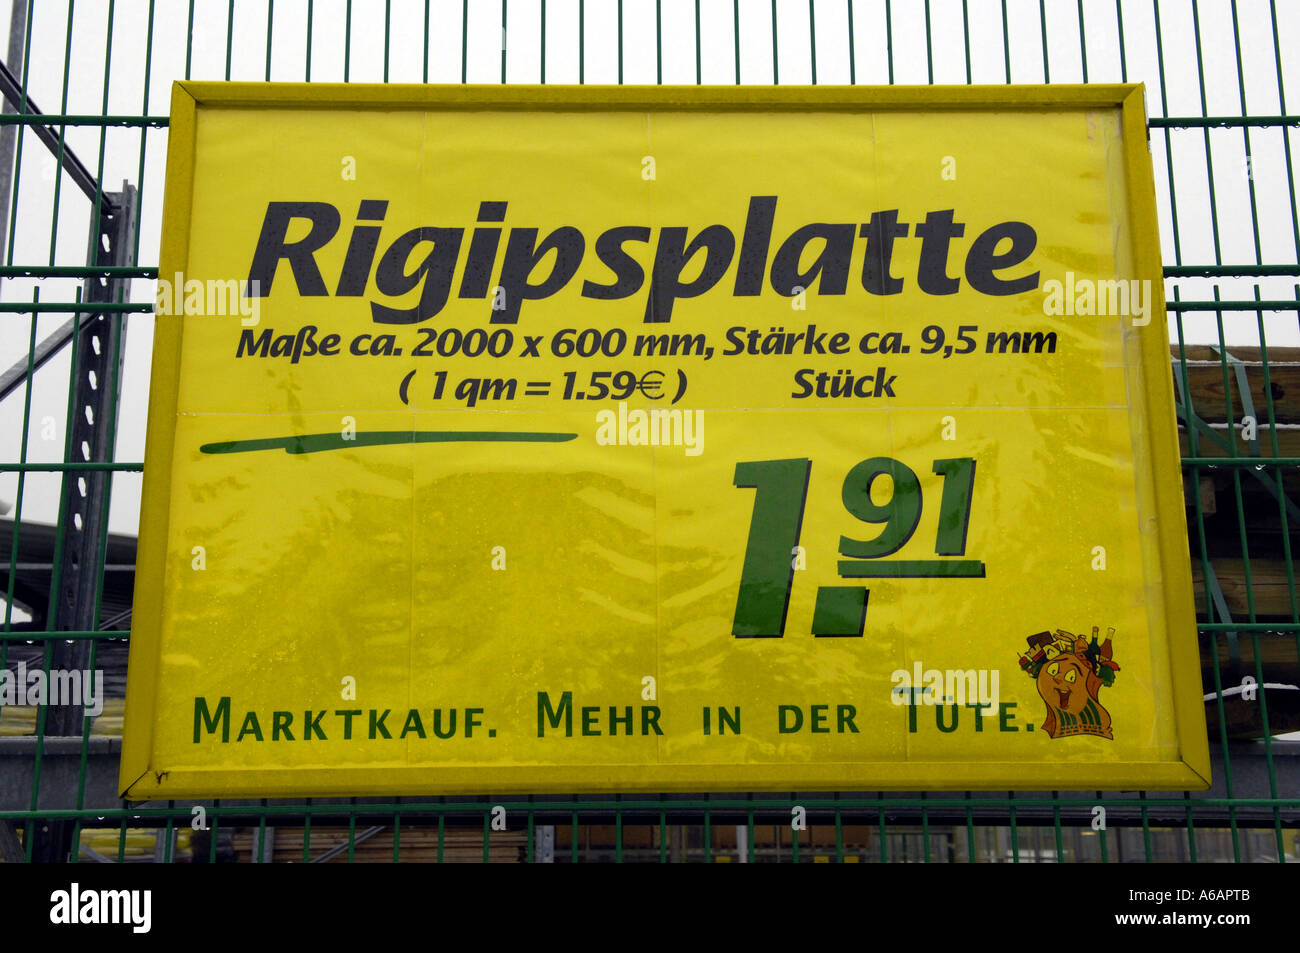 rigipsplatte photos & rigipsplatte images - alamy